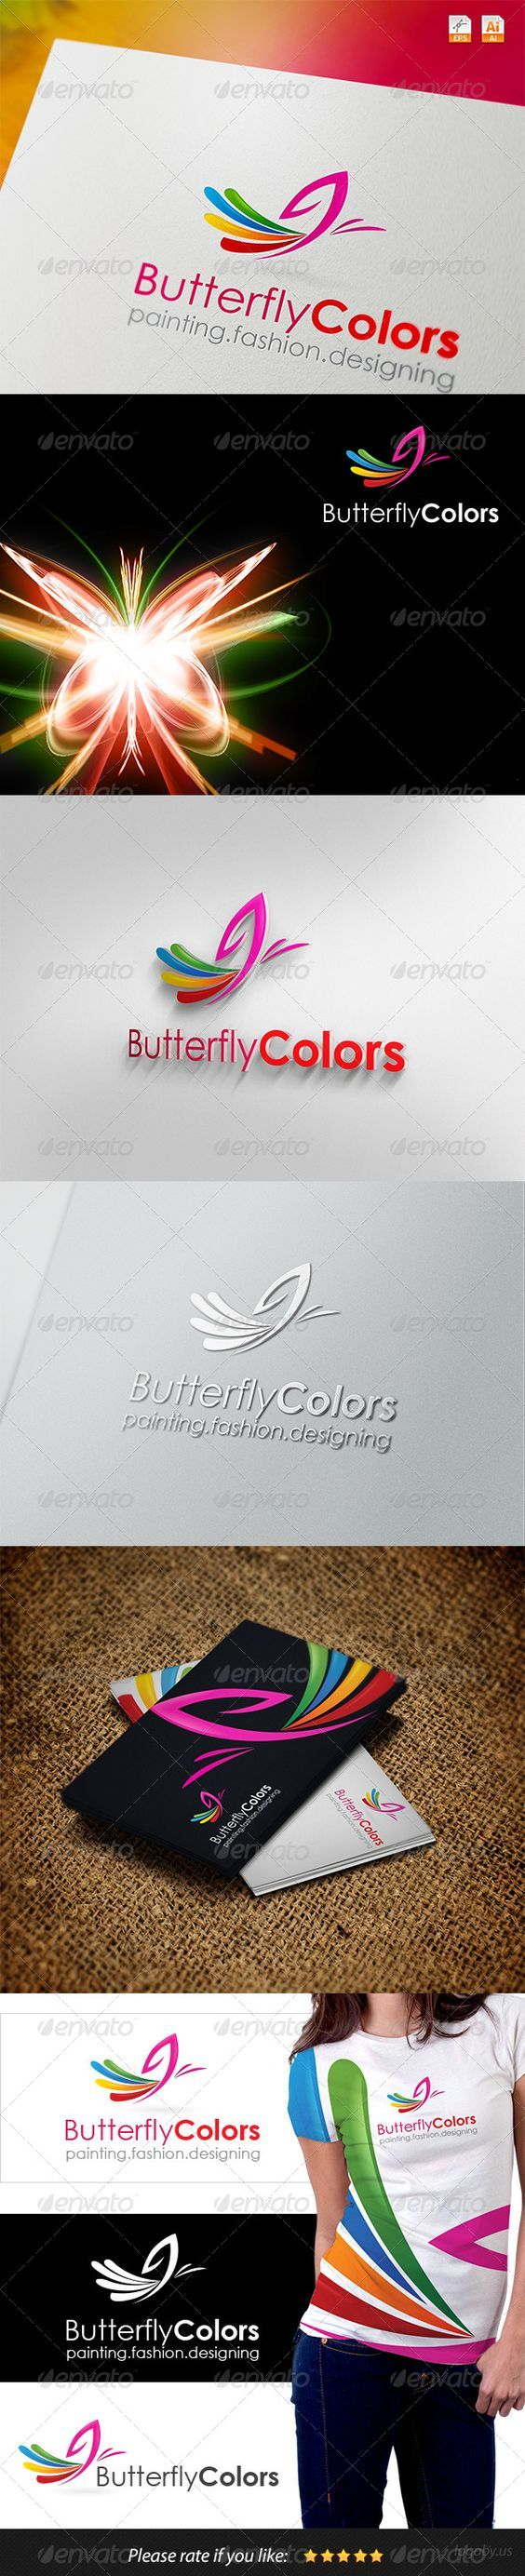 Logotype butterfly and letter b in different colour variants on a - Butterfly Colors Logo